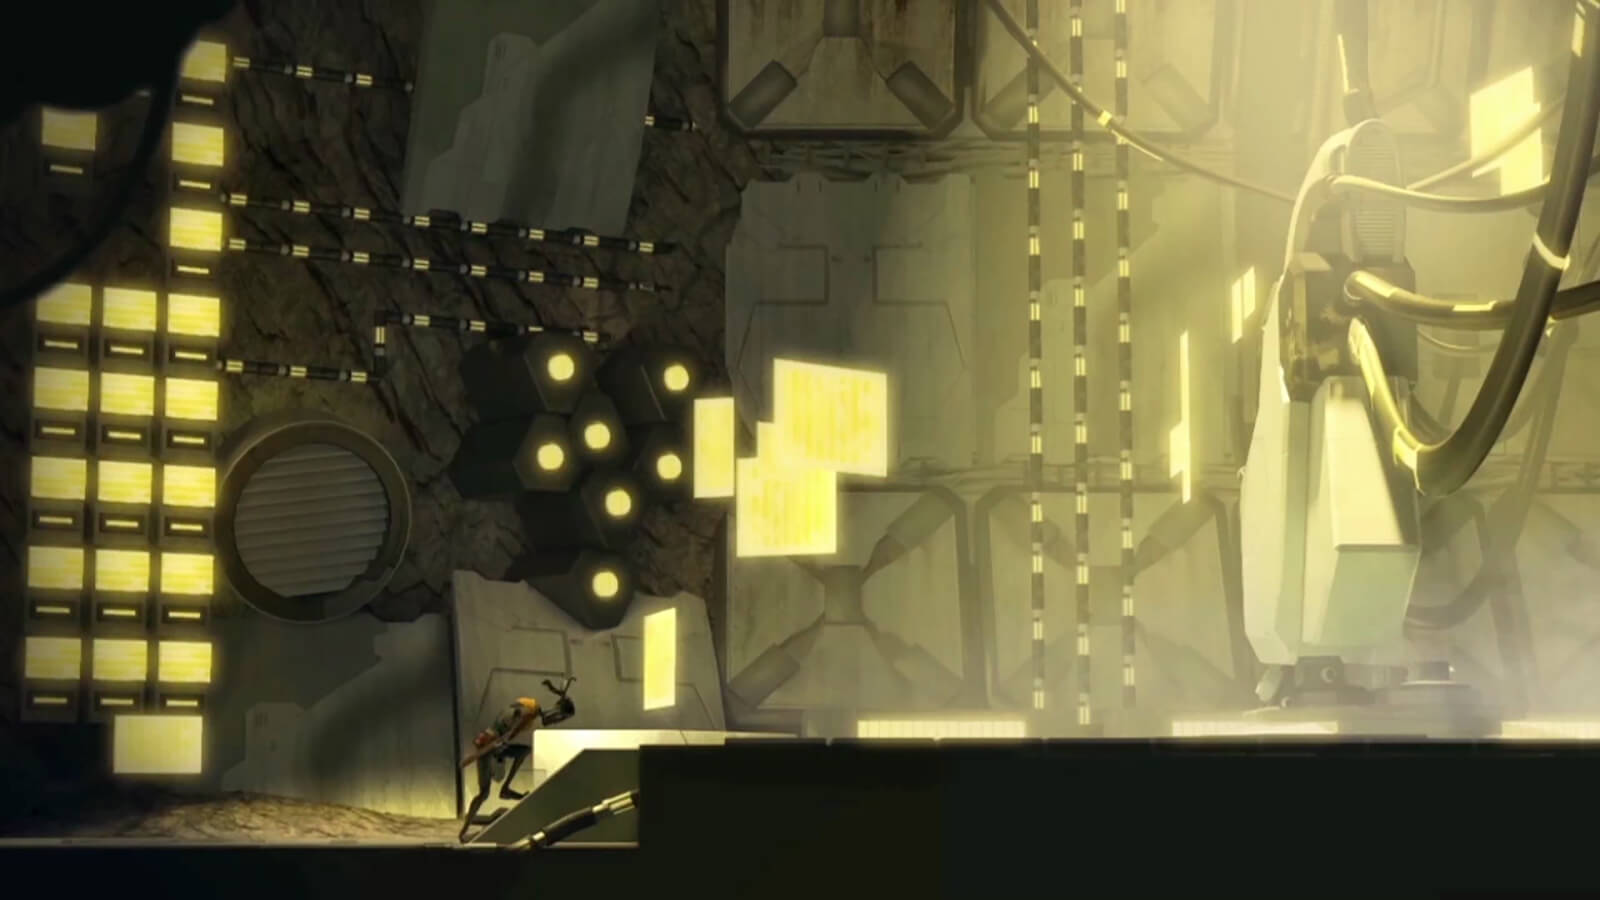 A man walks gingerly up to an altar where a large white machine stands in an expansive cavern lit by yellow lights